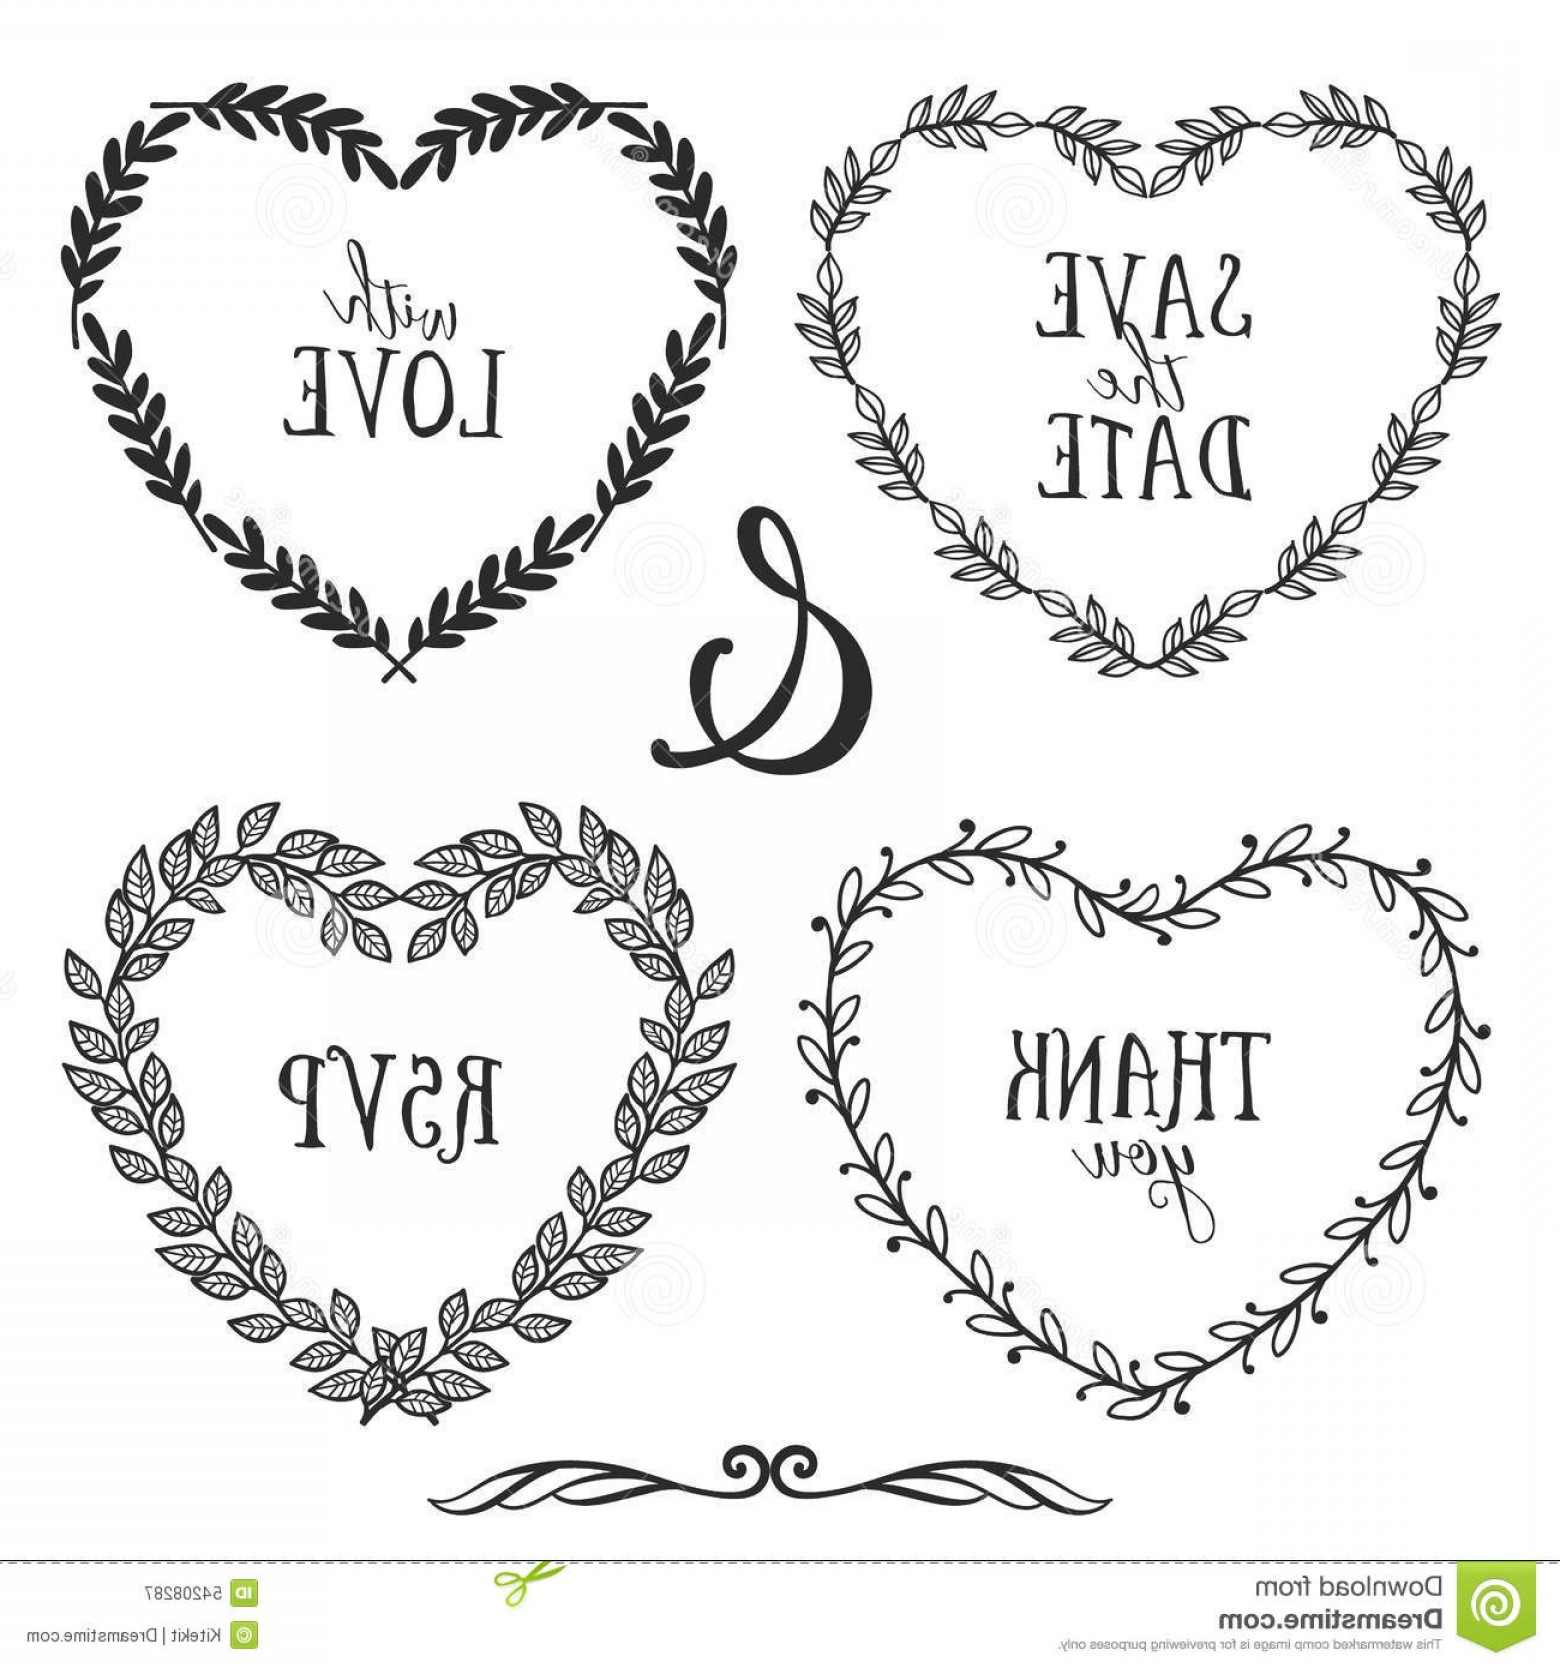 Rustic Heart Vectors: Hand Drawn Rustic Vintage Heart Wreaths With Lettering Illustration